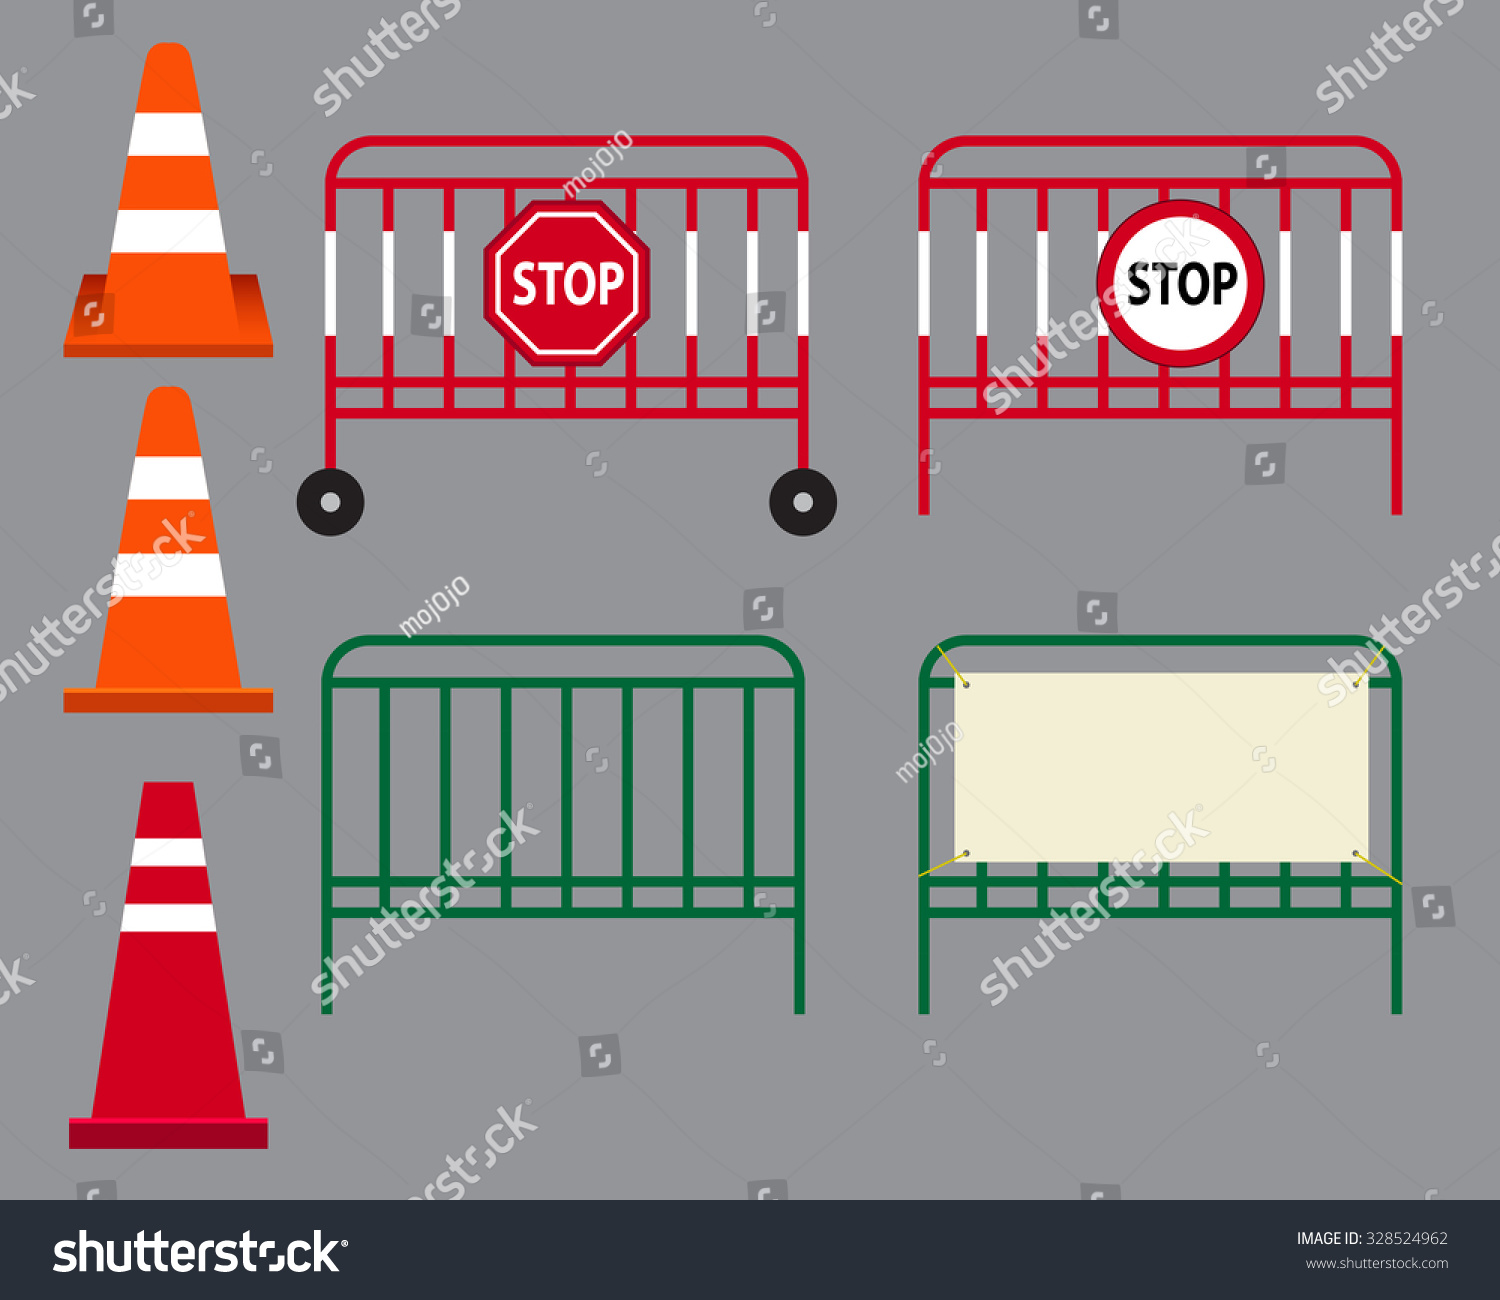 Traffic Cone Stop Sign On Street Stock Vector Royalty Free Fire Engines Diagram And Steel Barrier Isolated Object